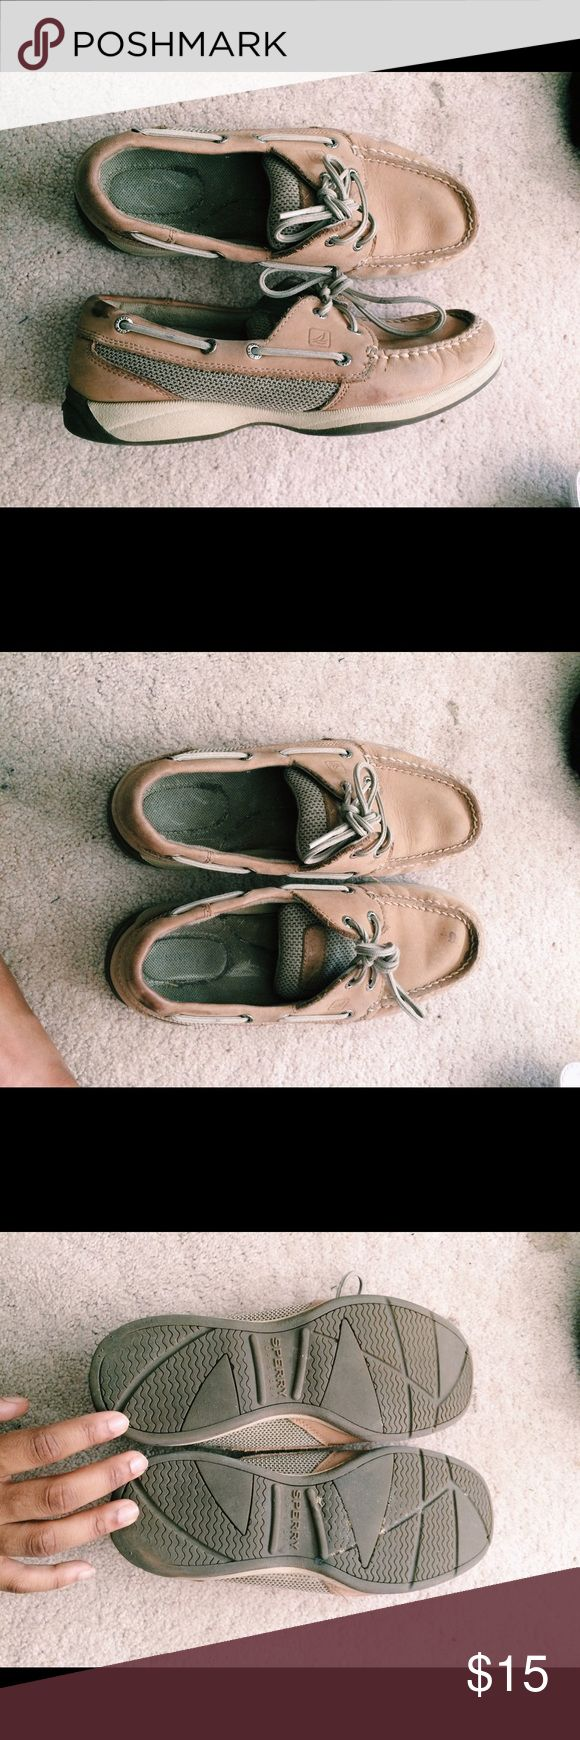 Original Sperry Topsider Boat Shoes Original Sperry Topsiders || Size 7 || Have been loved and worn many times, but still have a lot of life left in them. Sperry Top-Sider Shoes